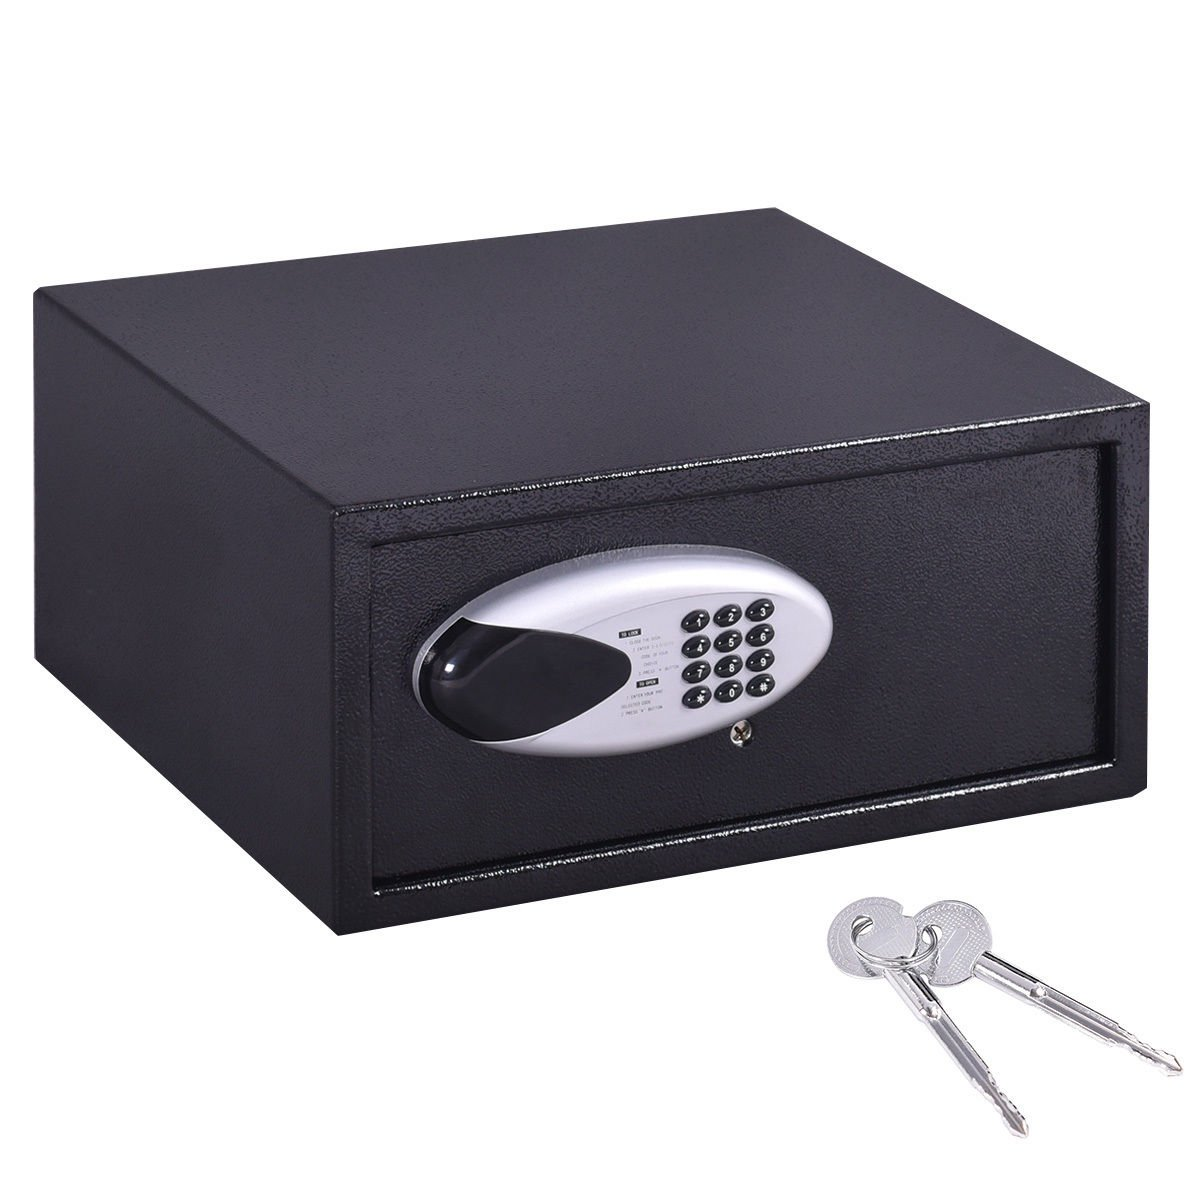 Safstar Electronic Digital Security Lock Box Wall Cabinet Safe for Jewelry Cash Valuable Home Office Hotel (16.9'' x 14.4'' x 7.8'') by S AFSTAR